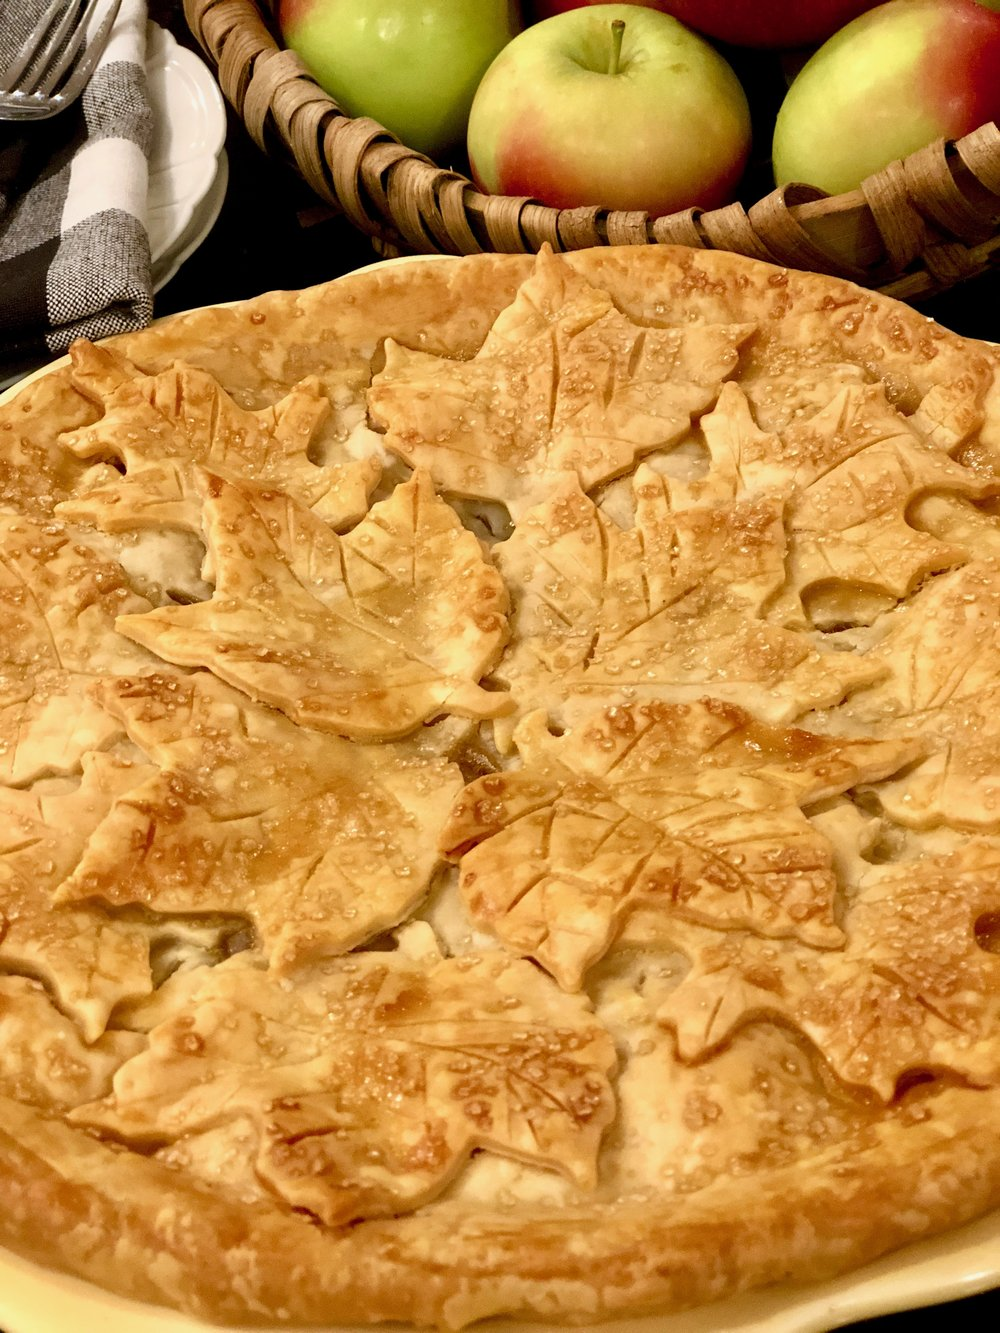 Apple Pie with pie crust leaves